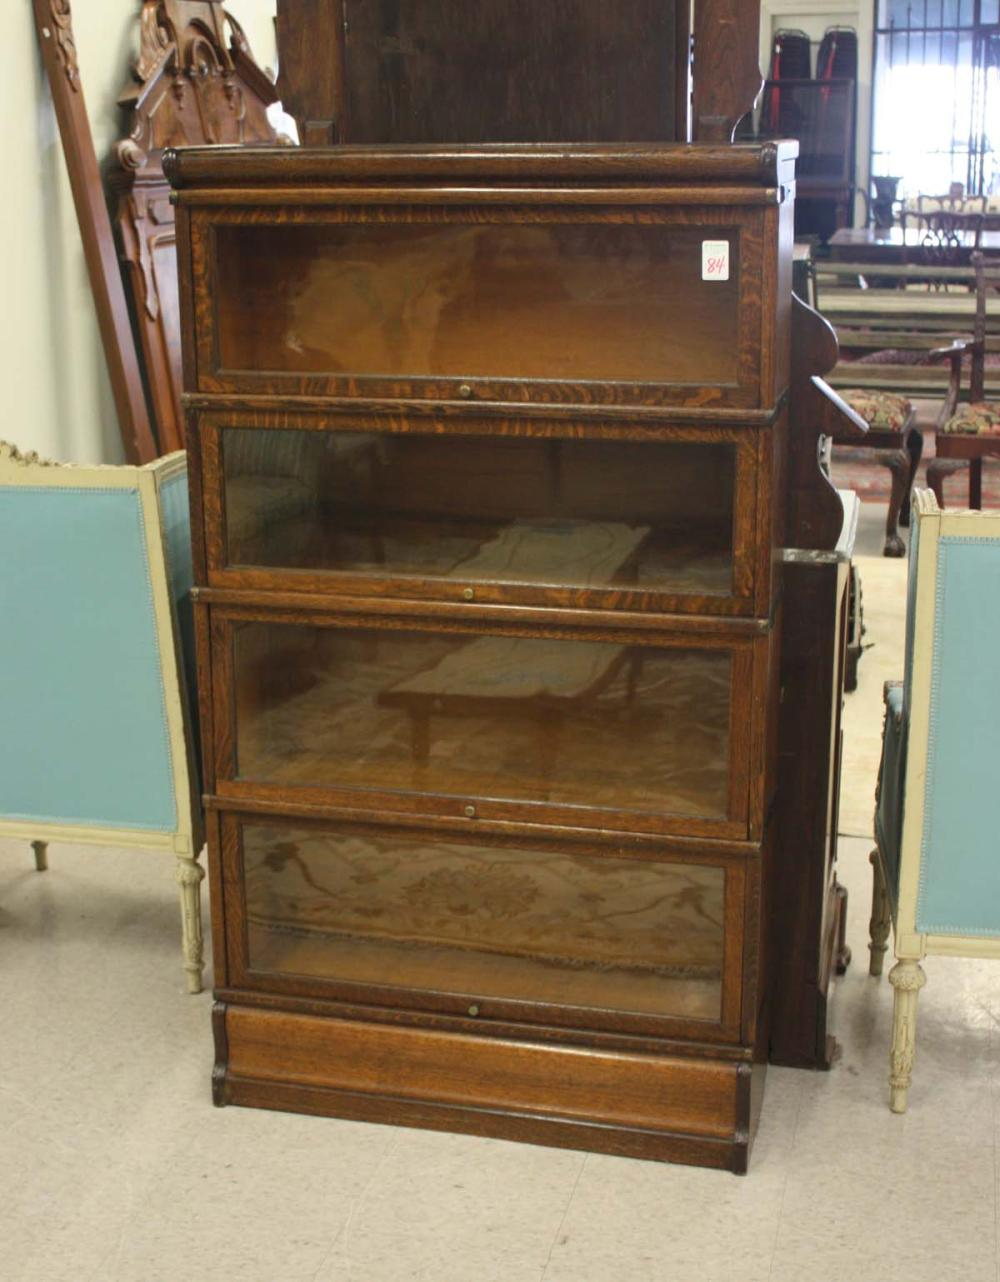 Lot 84: FOUR-SECTION STACKING OAK BOOKCASE, American, c. 1